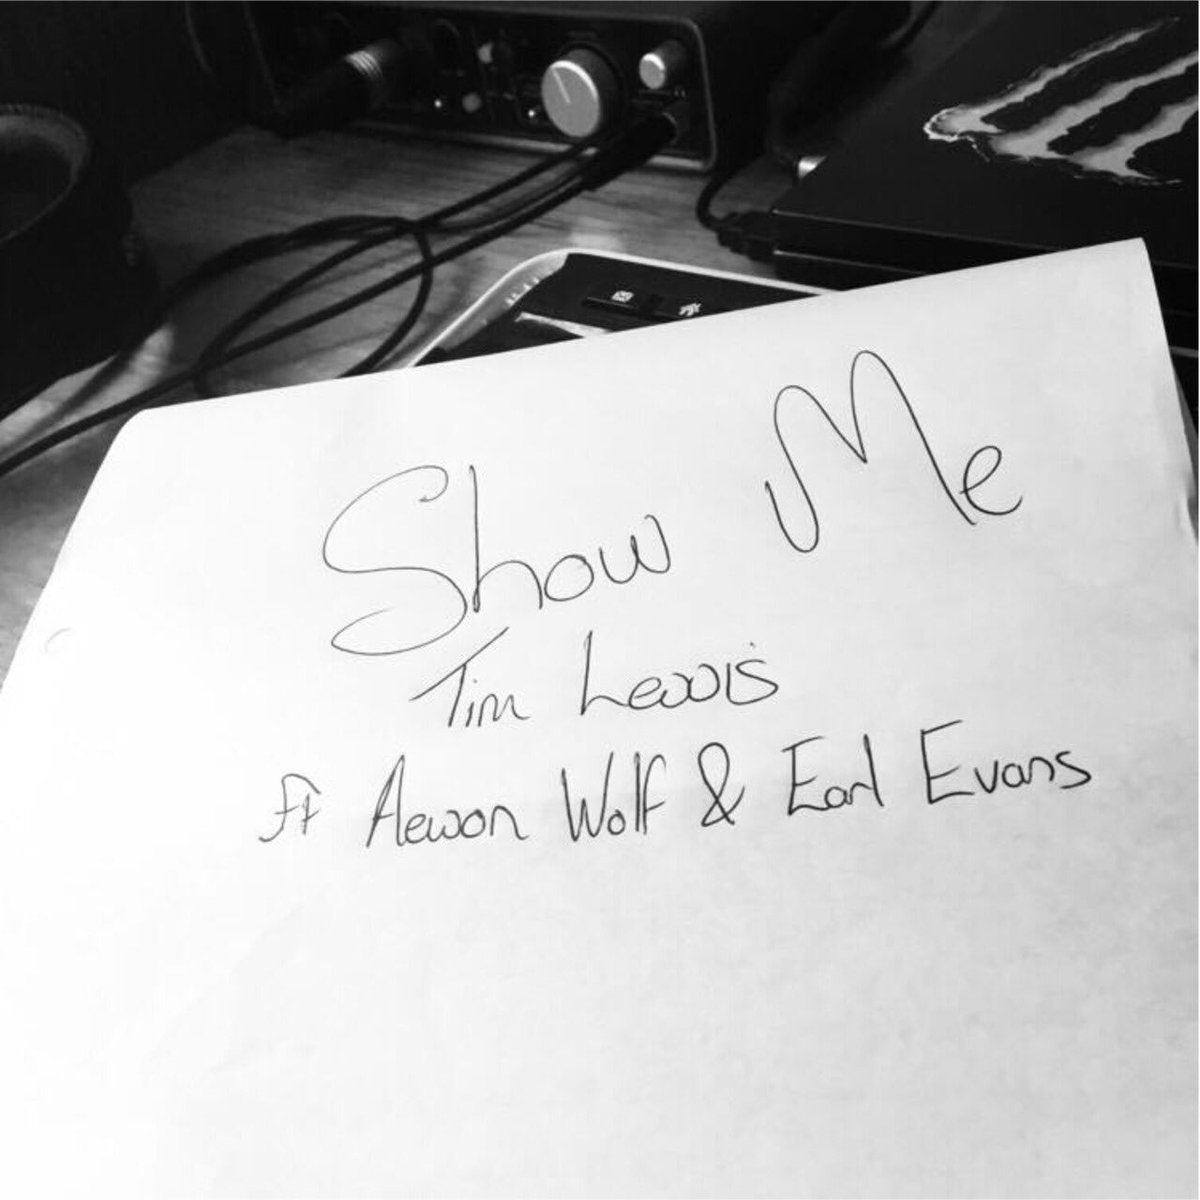 Tim Lewis - Show Me ft. Aewon Wolf & Earl Evans